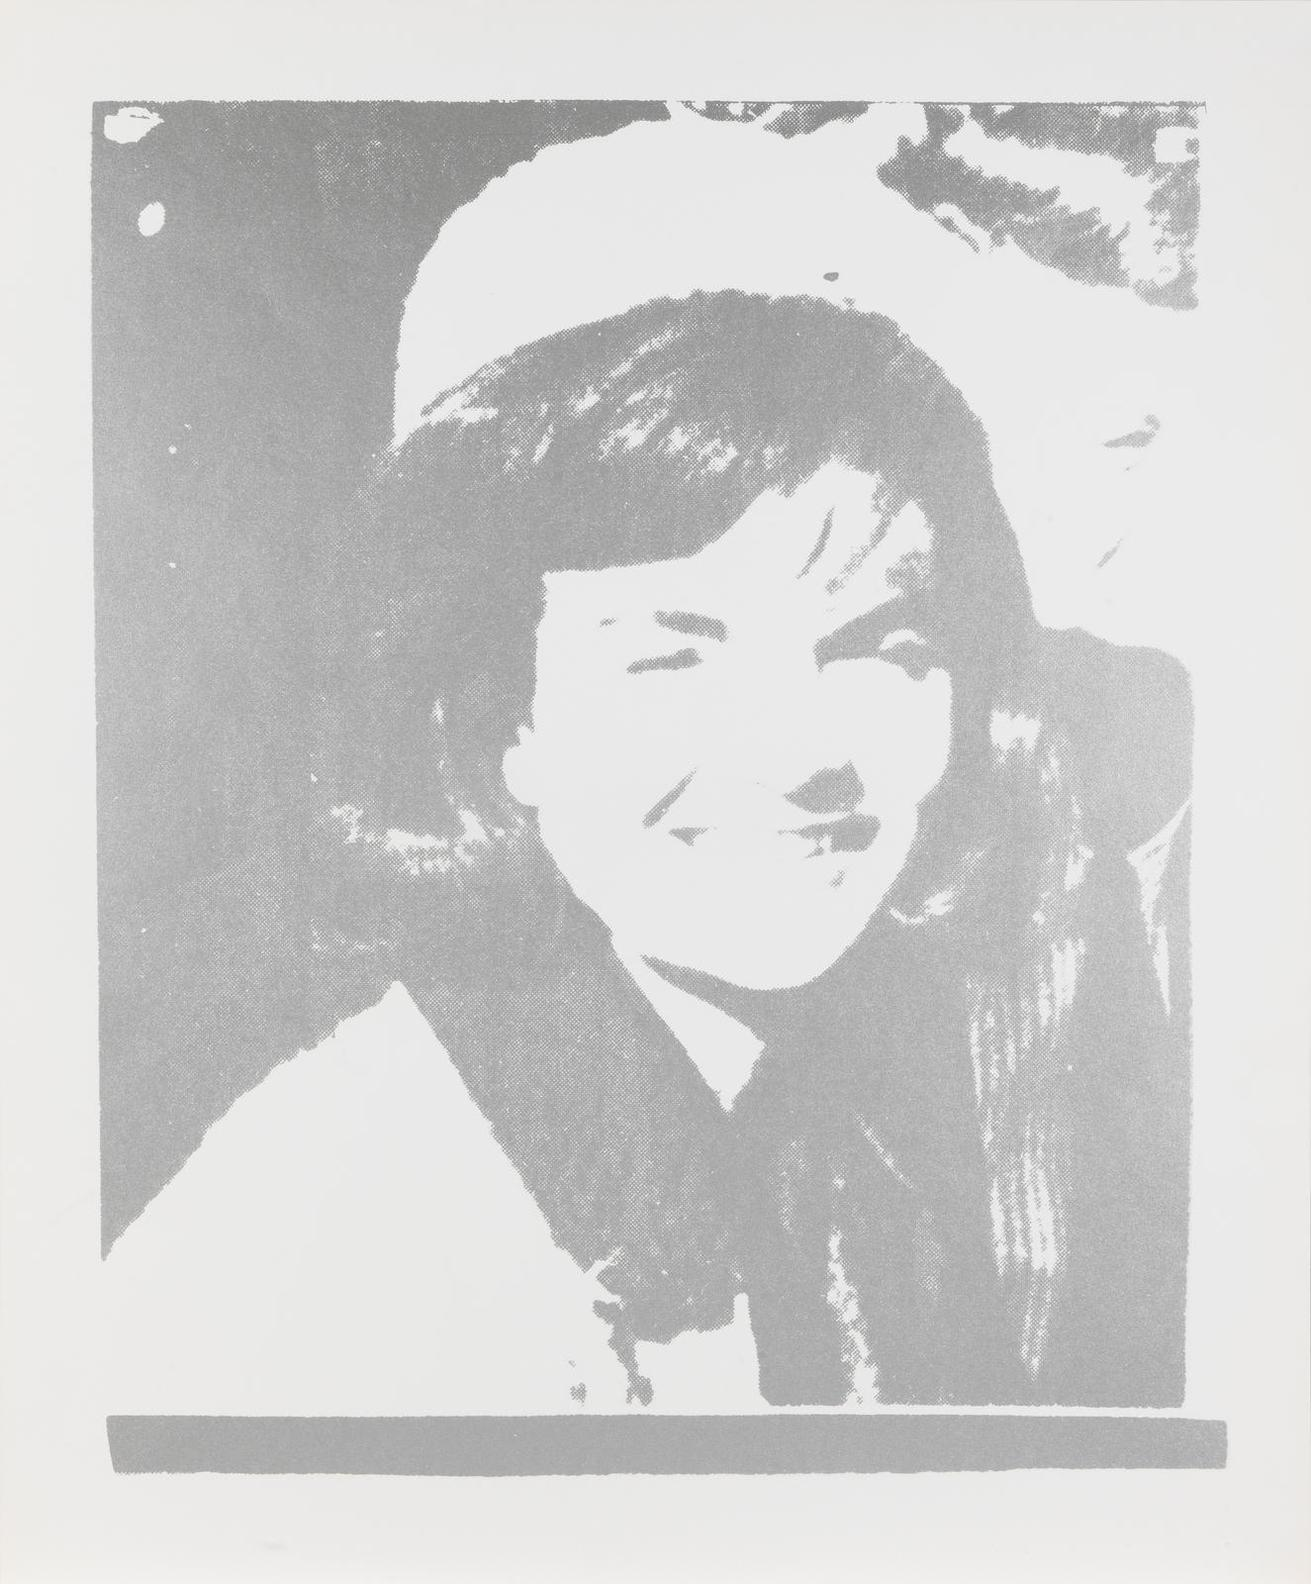 Andy Warhol-Jacqueline Kennedy I, From 11 Pop Artists I (Feldman & Schellmann 13)-1966